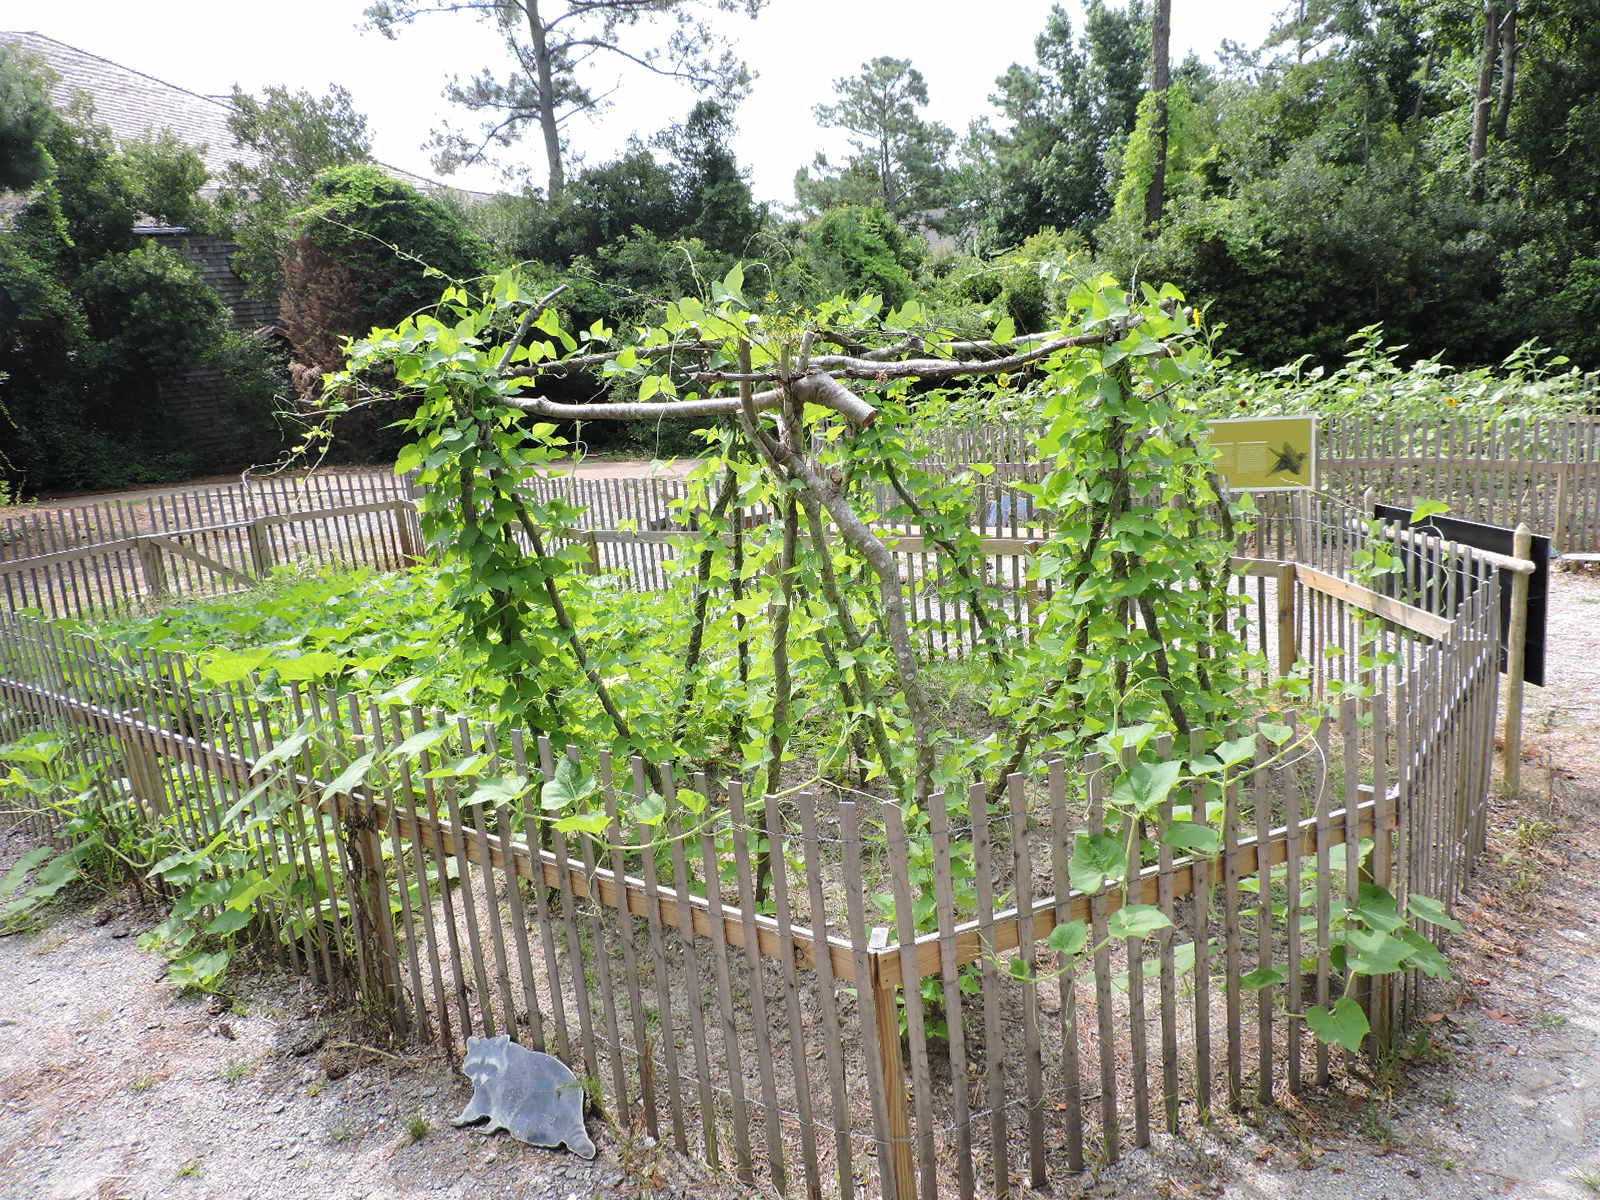 Roanoke Island: Spring Gardening Tips From American Indian